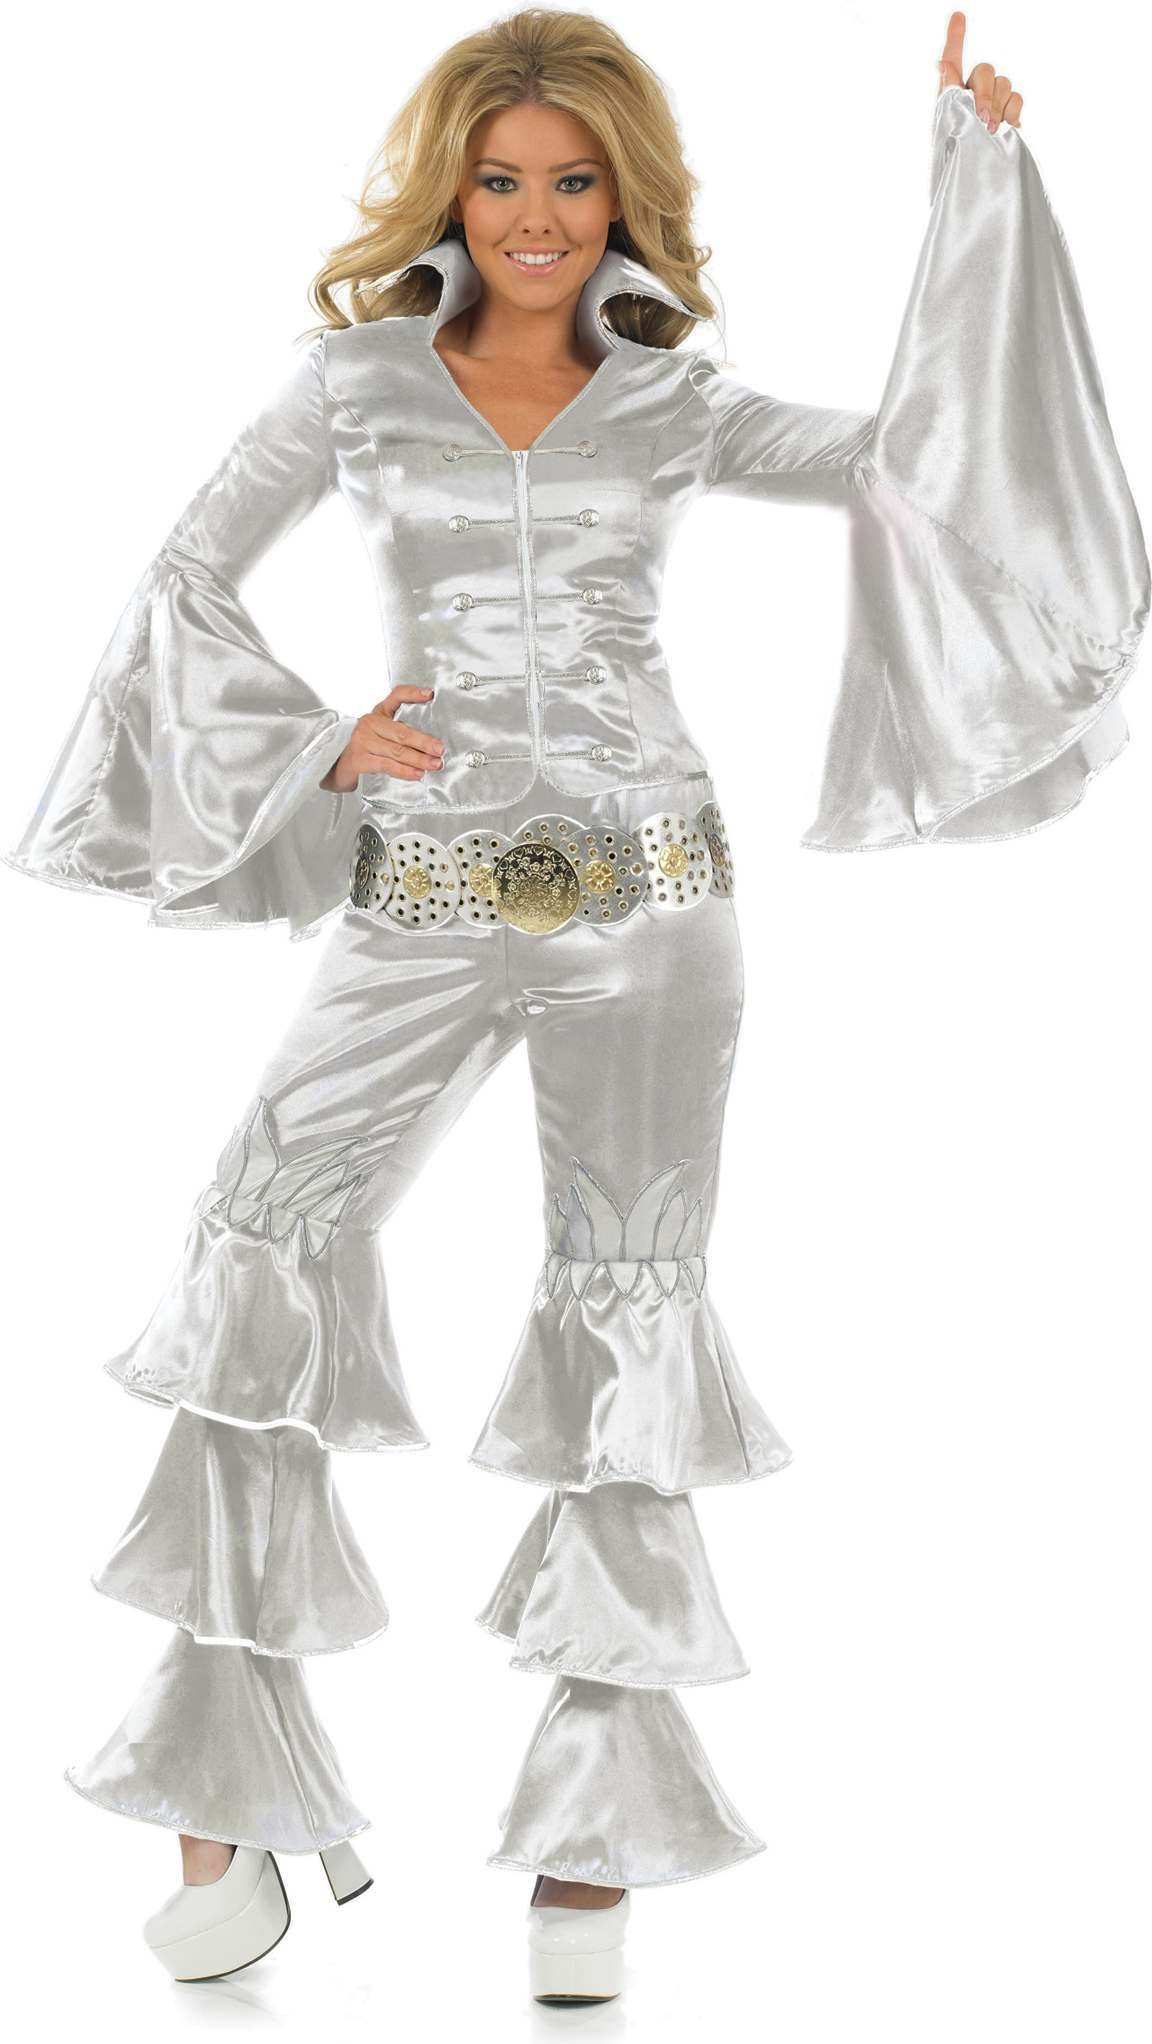 Silver Dancing Queen Fancy Dress Costume